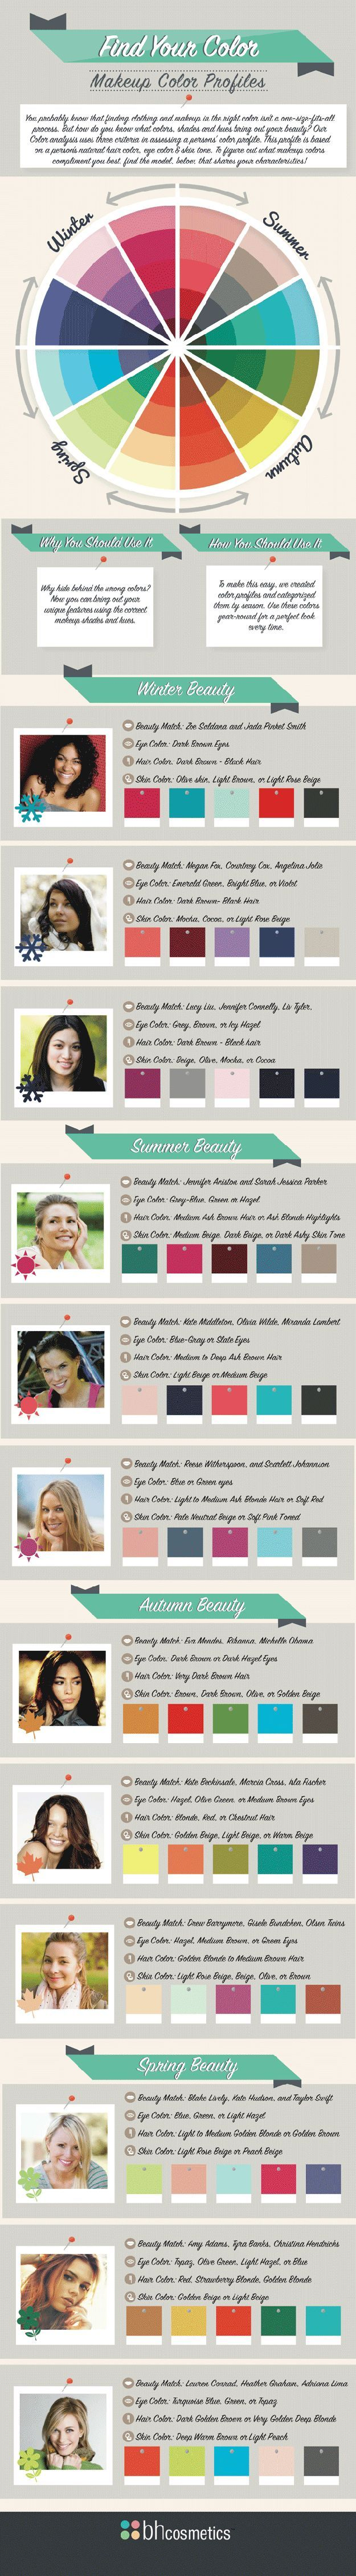 Eyeshadow Color Combination: Makeup Color Wheel | Find Out The Perfect Makeup Color For Your Skin Tone - Makeup Tips And Tricks by Makeup Tutorials at  http://makeuptutorials.com/eyeshadow-color-combination-makeup-color-wheel/